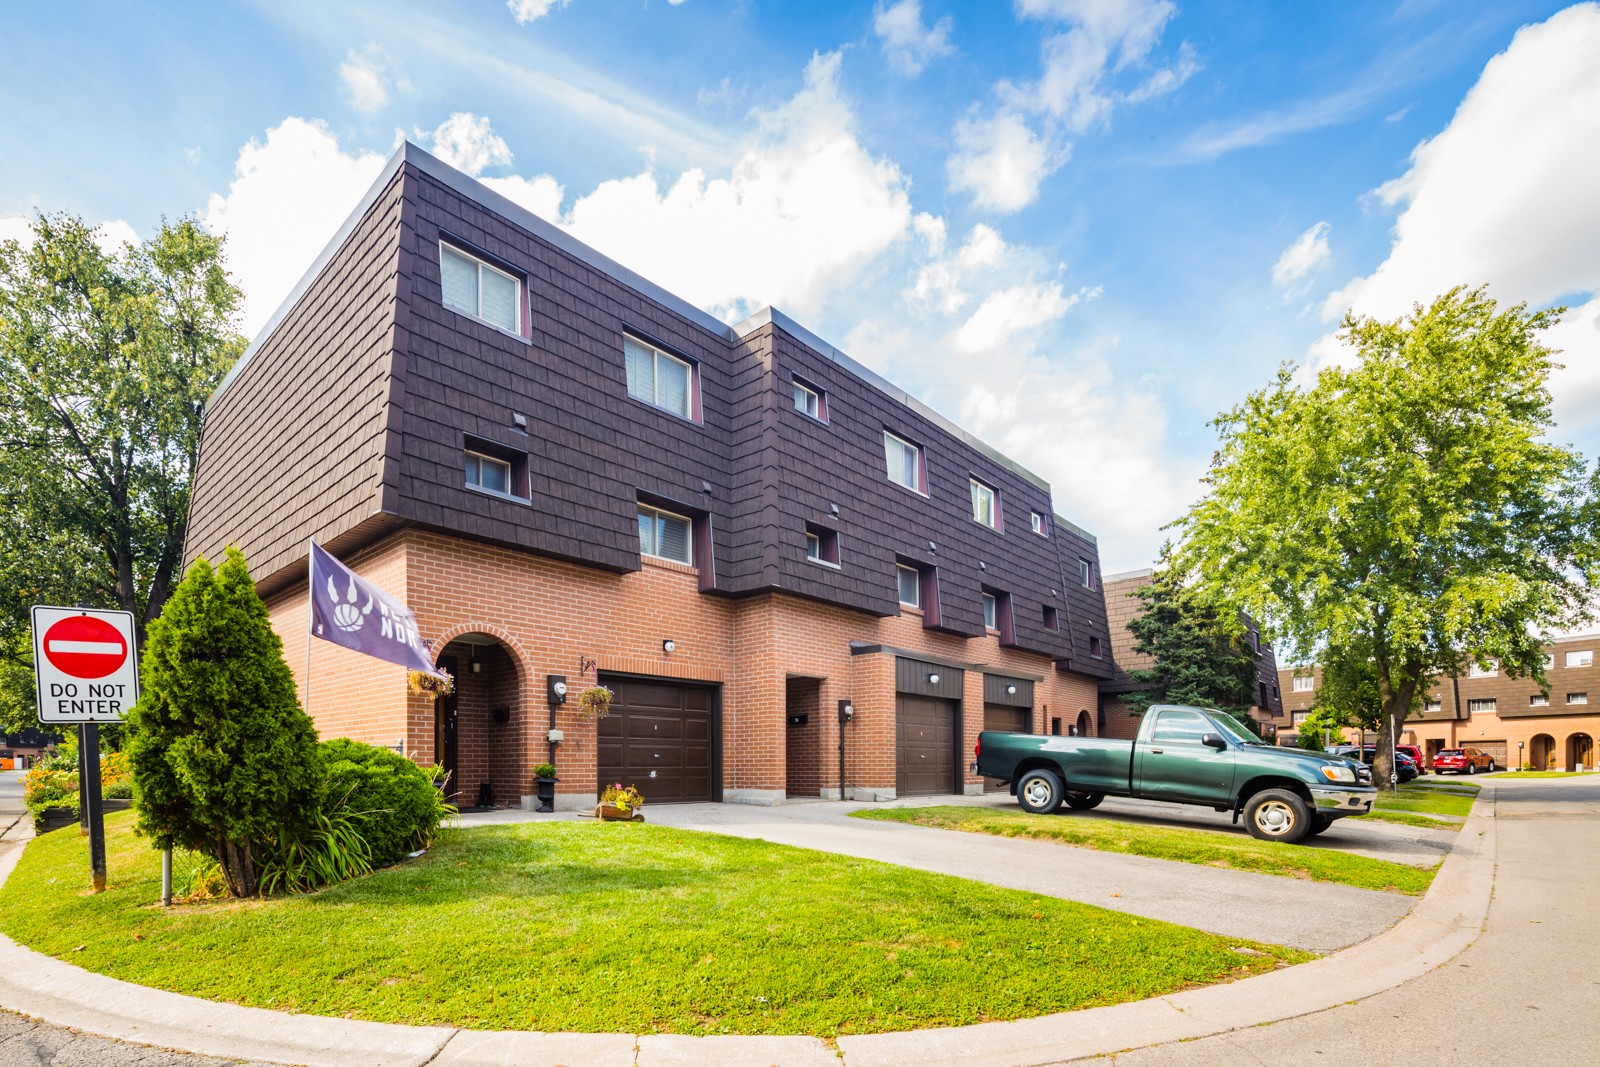 Darras Court at 111 Darras Crt, Brampton 0